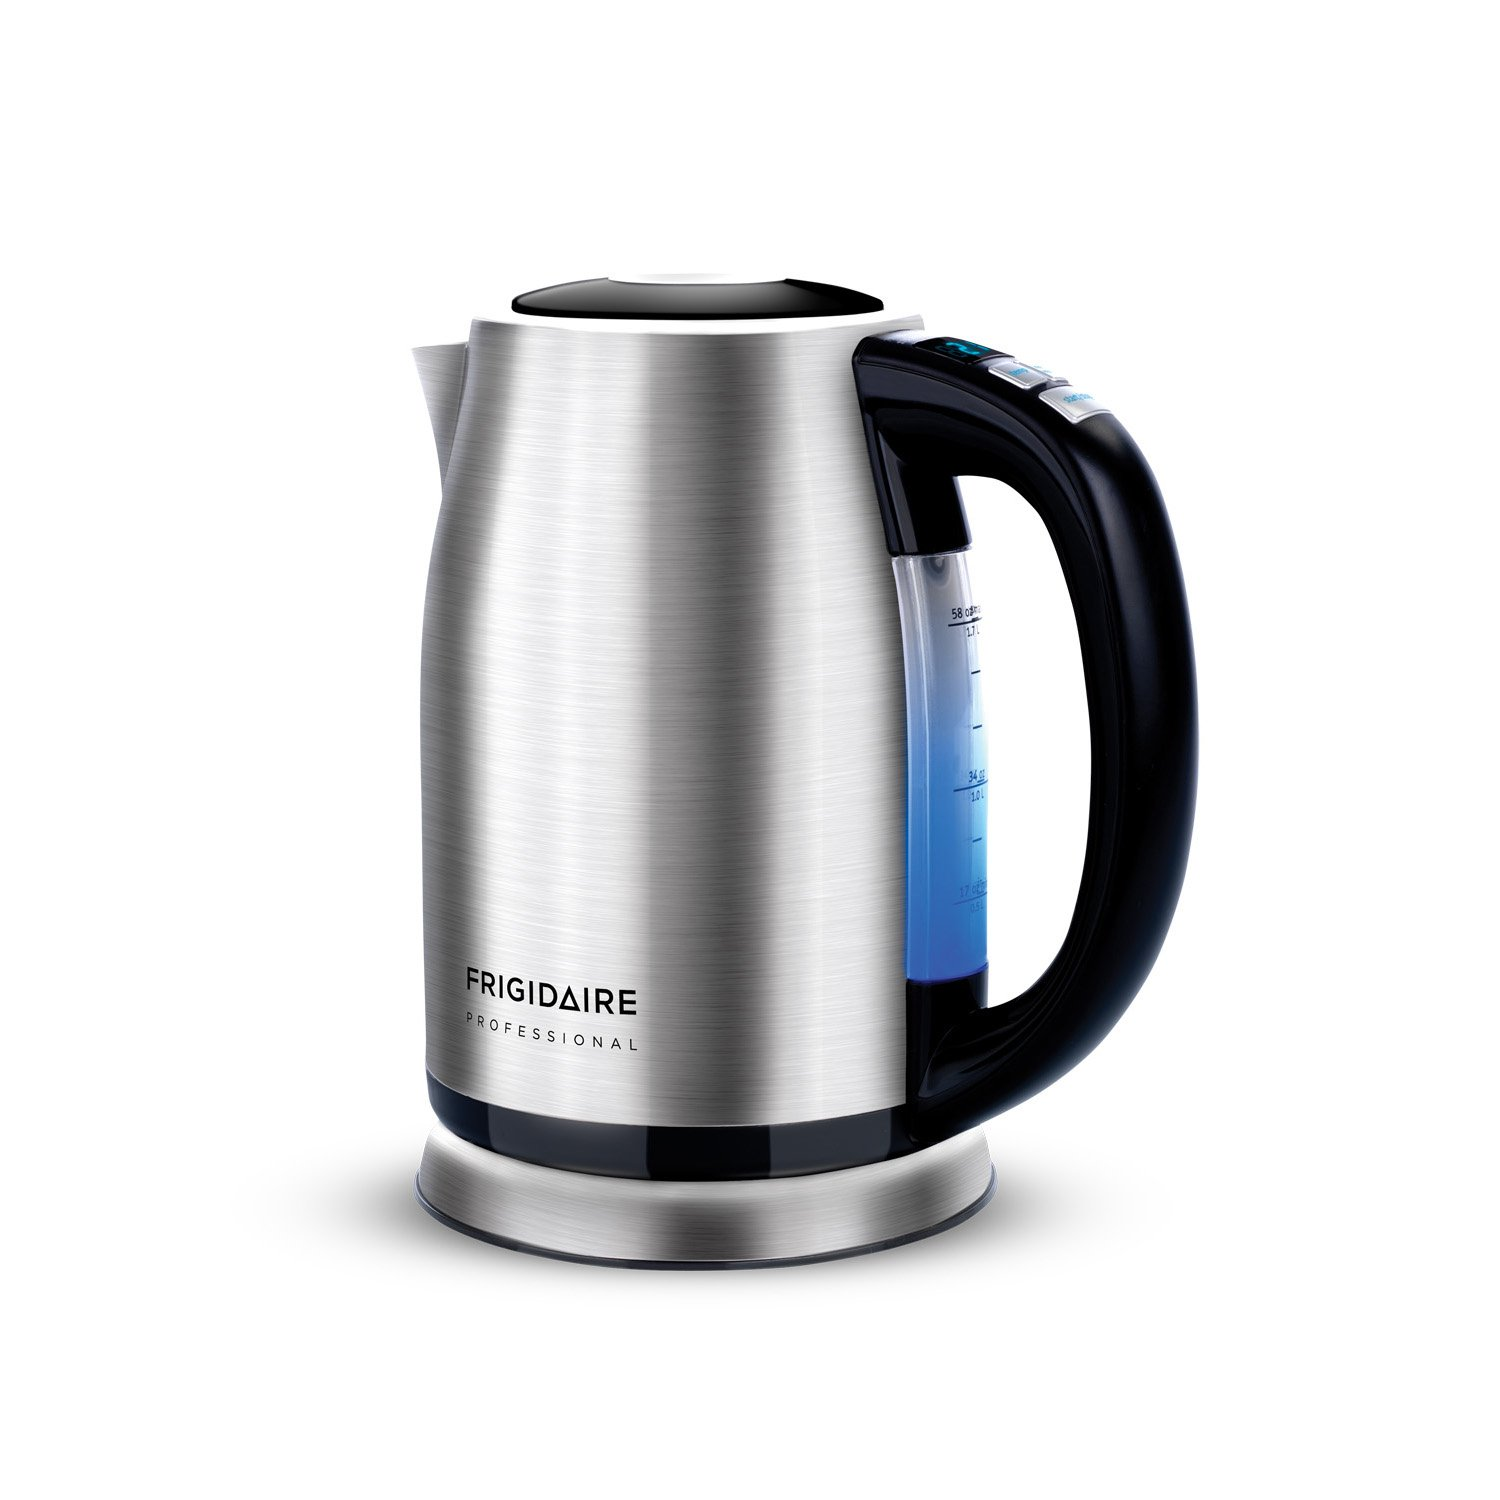 Frigidaire FPKT58D7NS Programmable Kettle, Stainless Steel, Small Electrolux